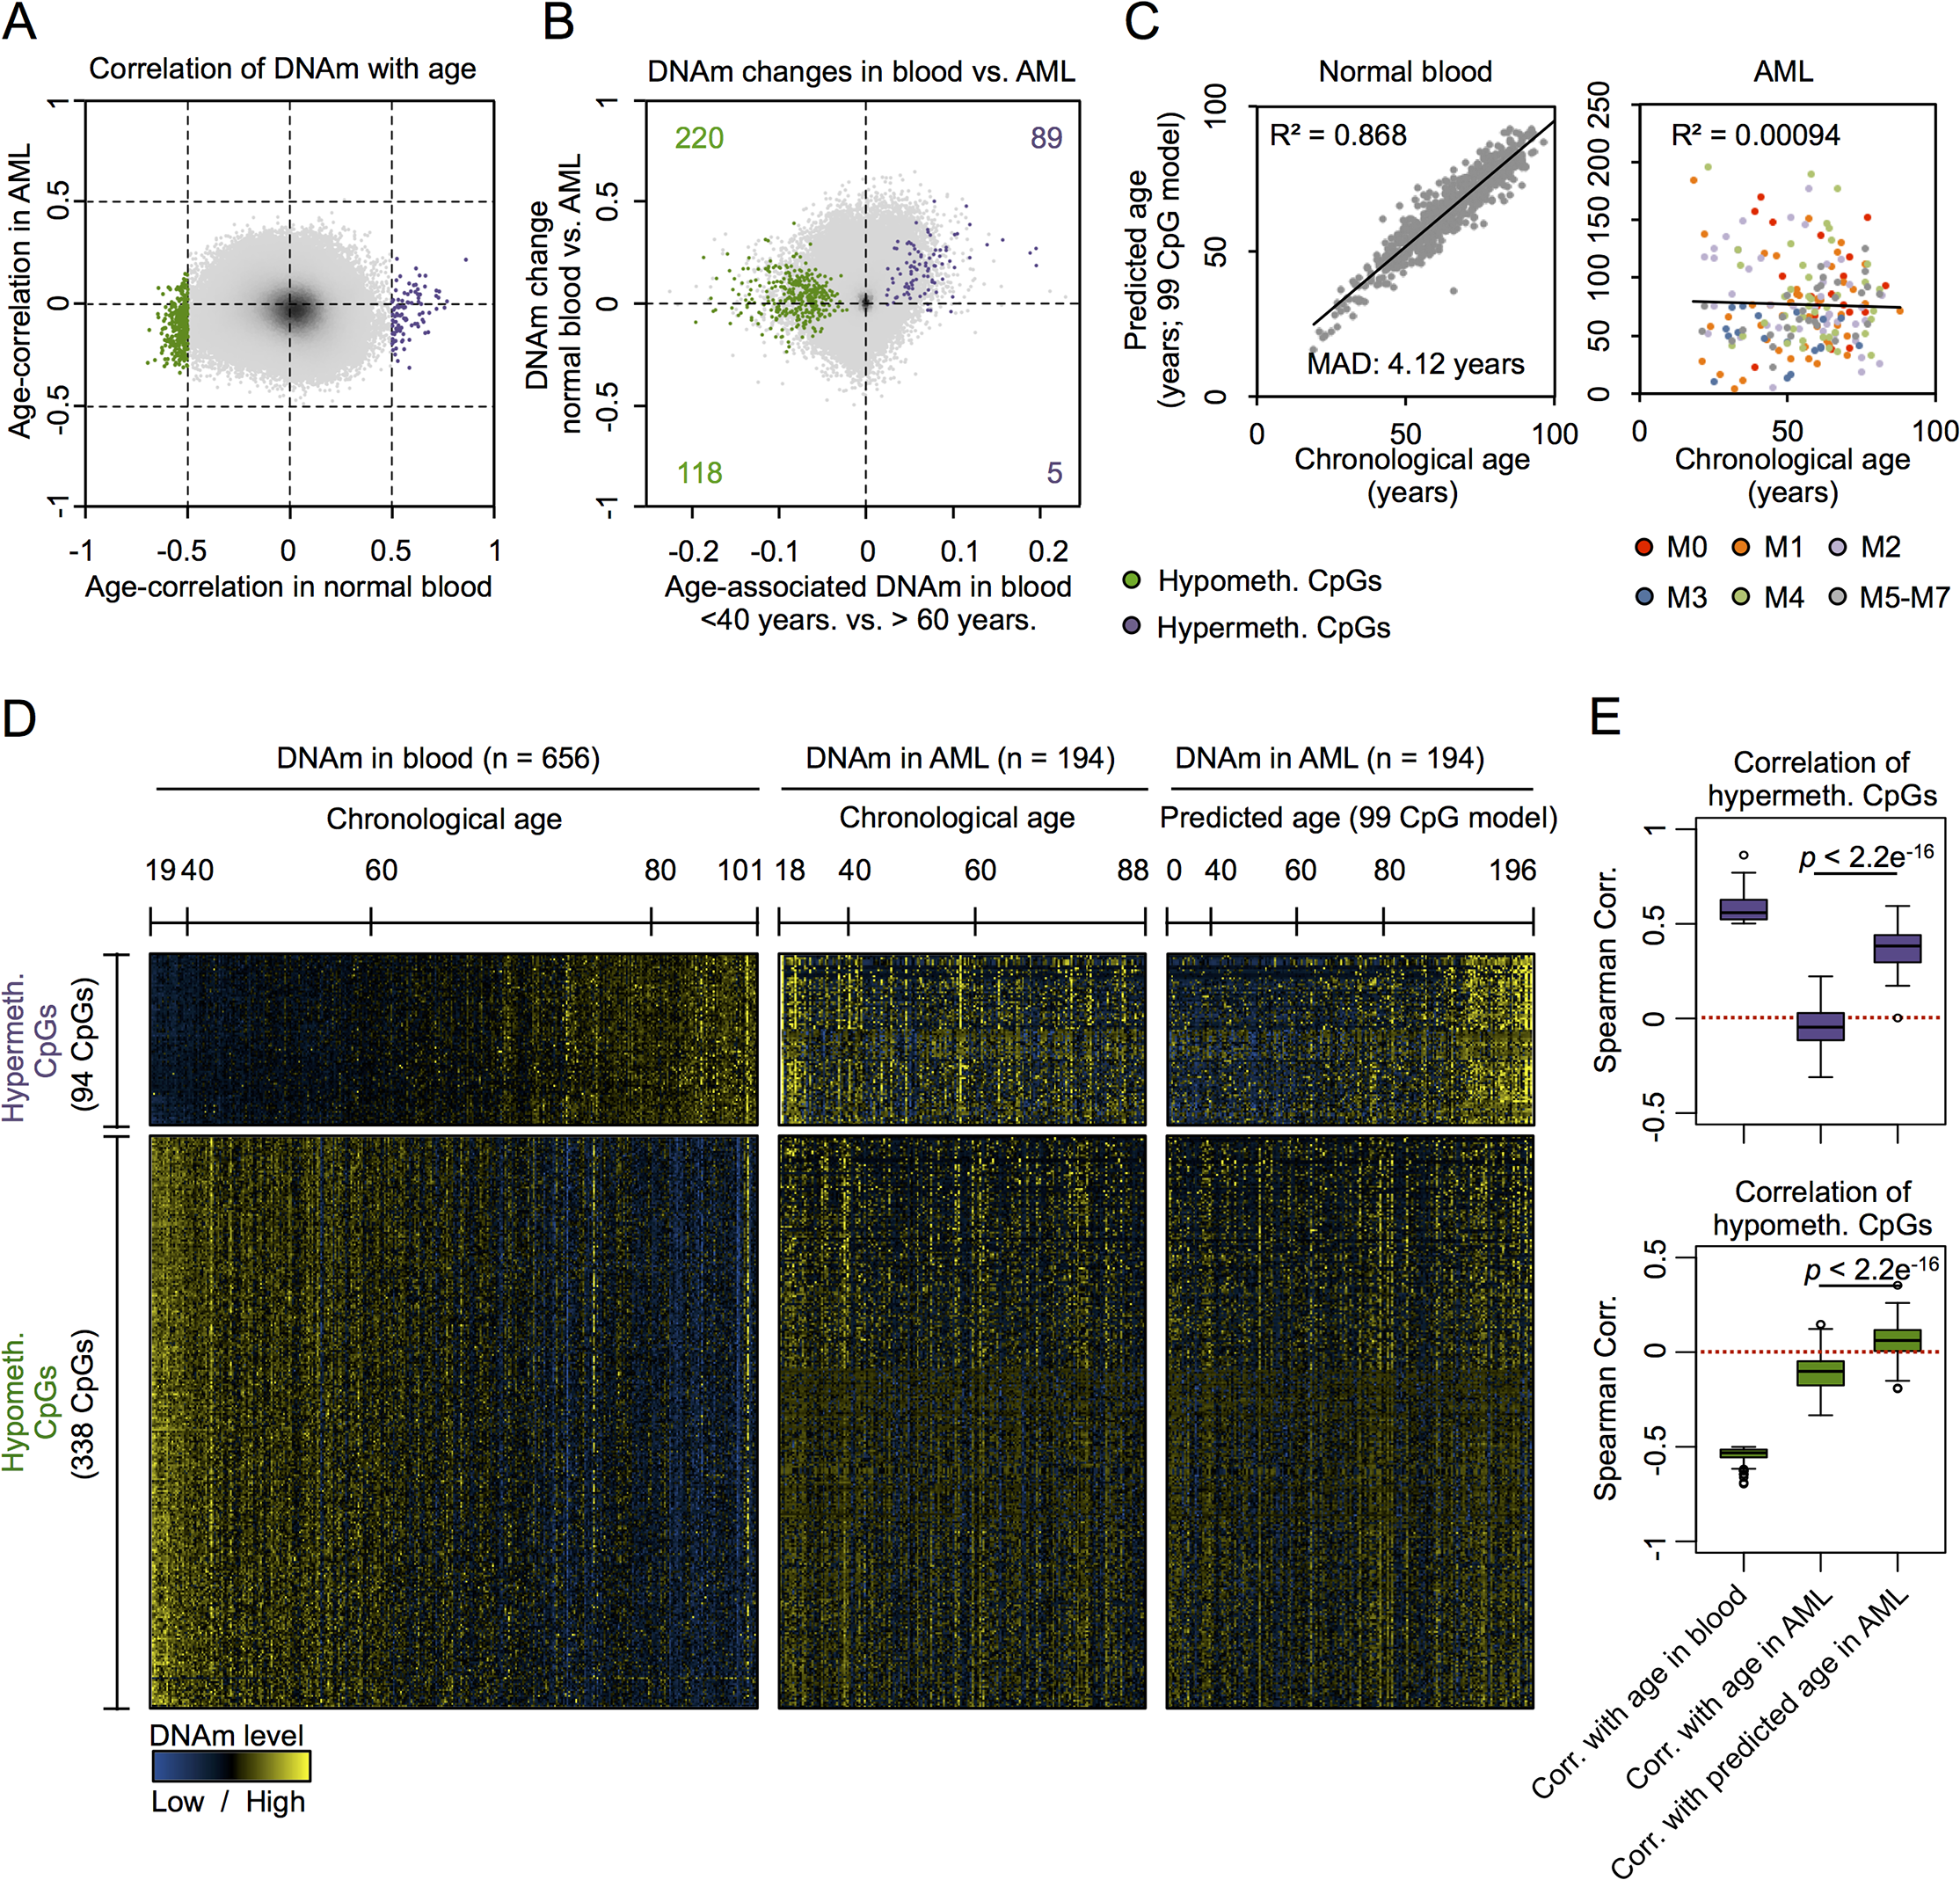 CpGs with age-associated hypermethylation are coherently modified in AML.